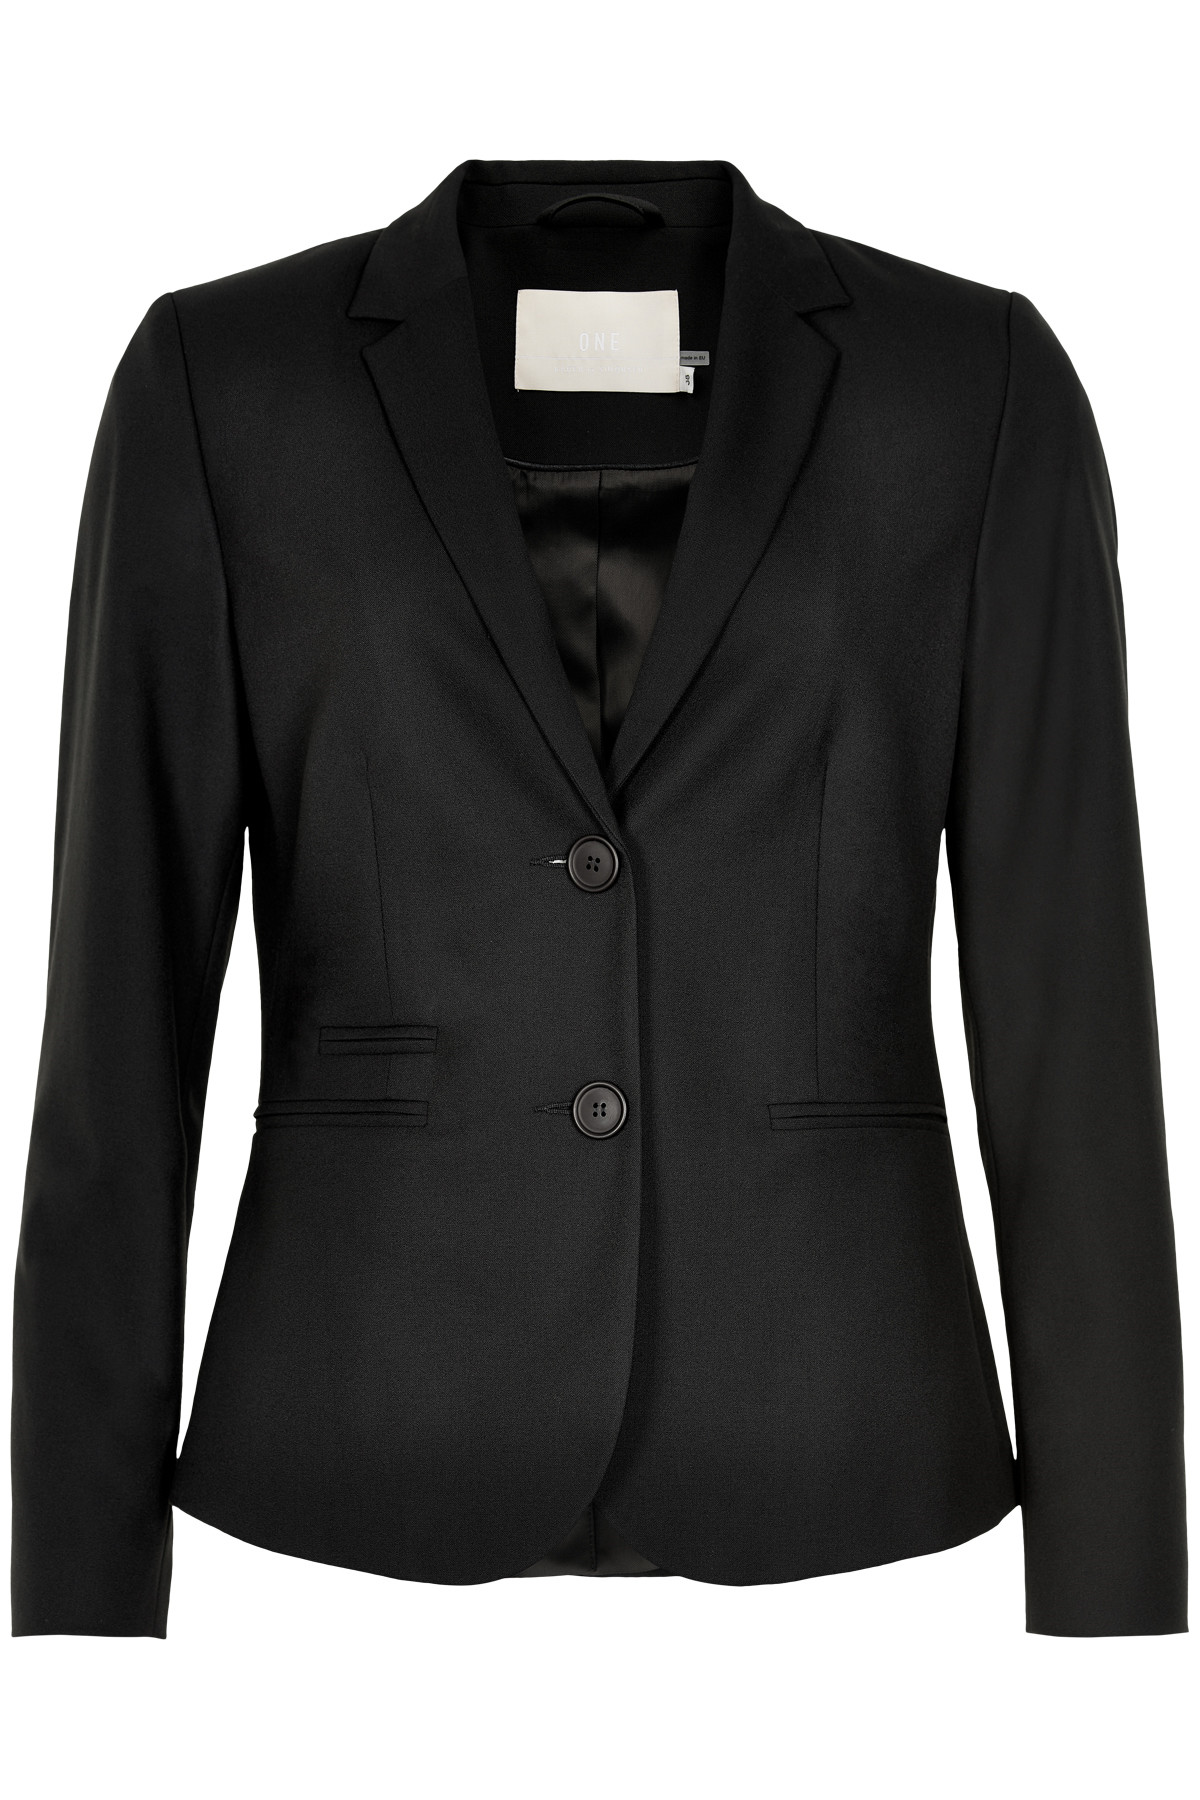 Image of   KAREN BY SIMONSEN SYDNEY BLAZER 10102089 (Black 40999, 42)